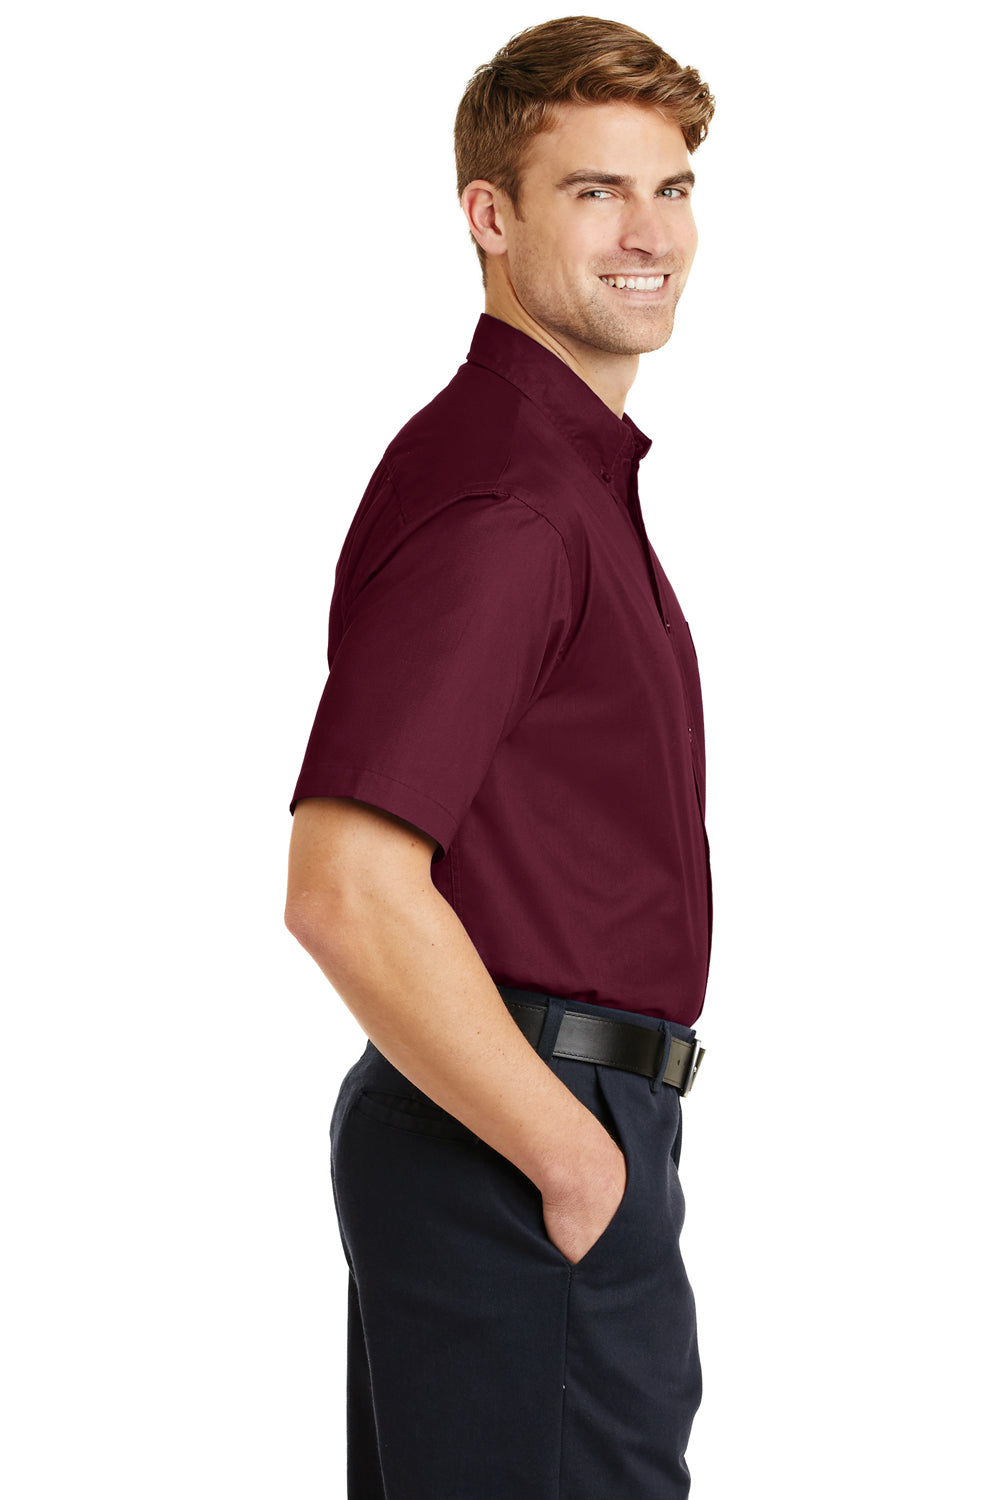 CornerStone SP18 Mens SuperPro Stain Resistant Short Sleeve Button Down Shirt w/ Pocket Burgundy Side